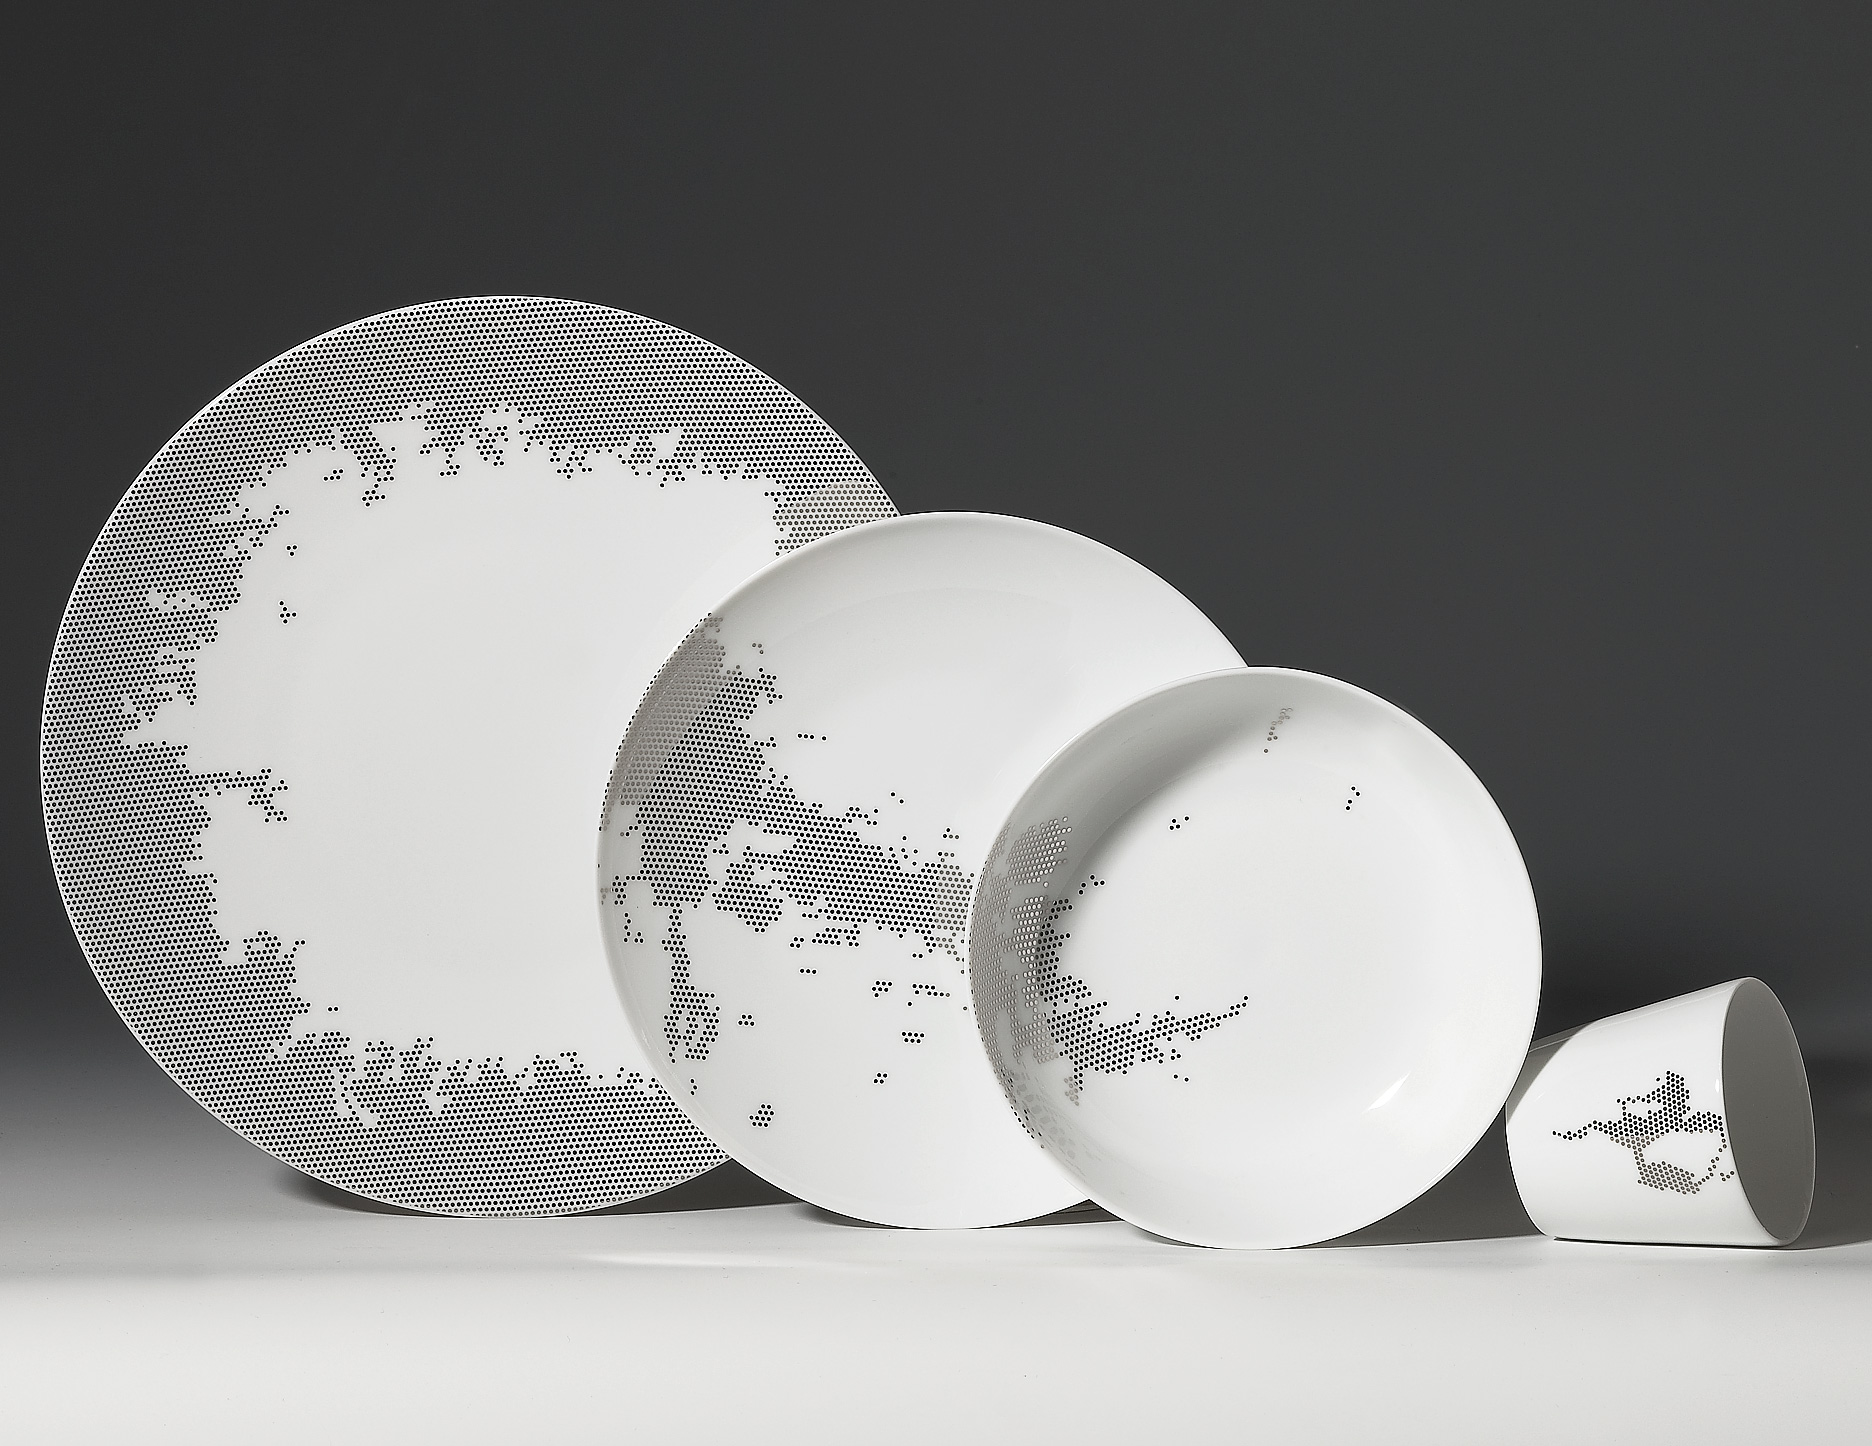 Luxury Porcelain Tableware With Modern Design By Non Sans